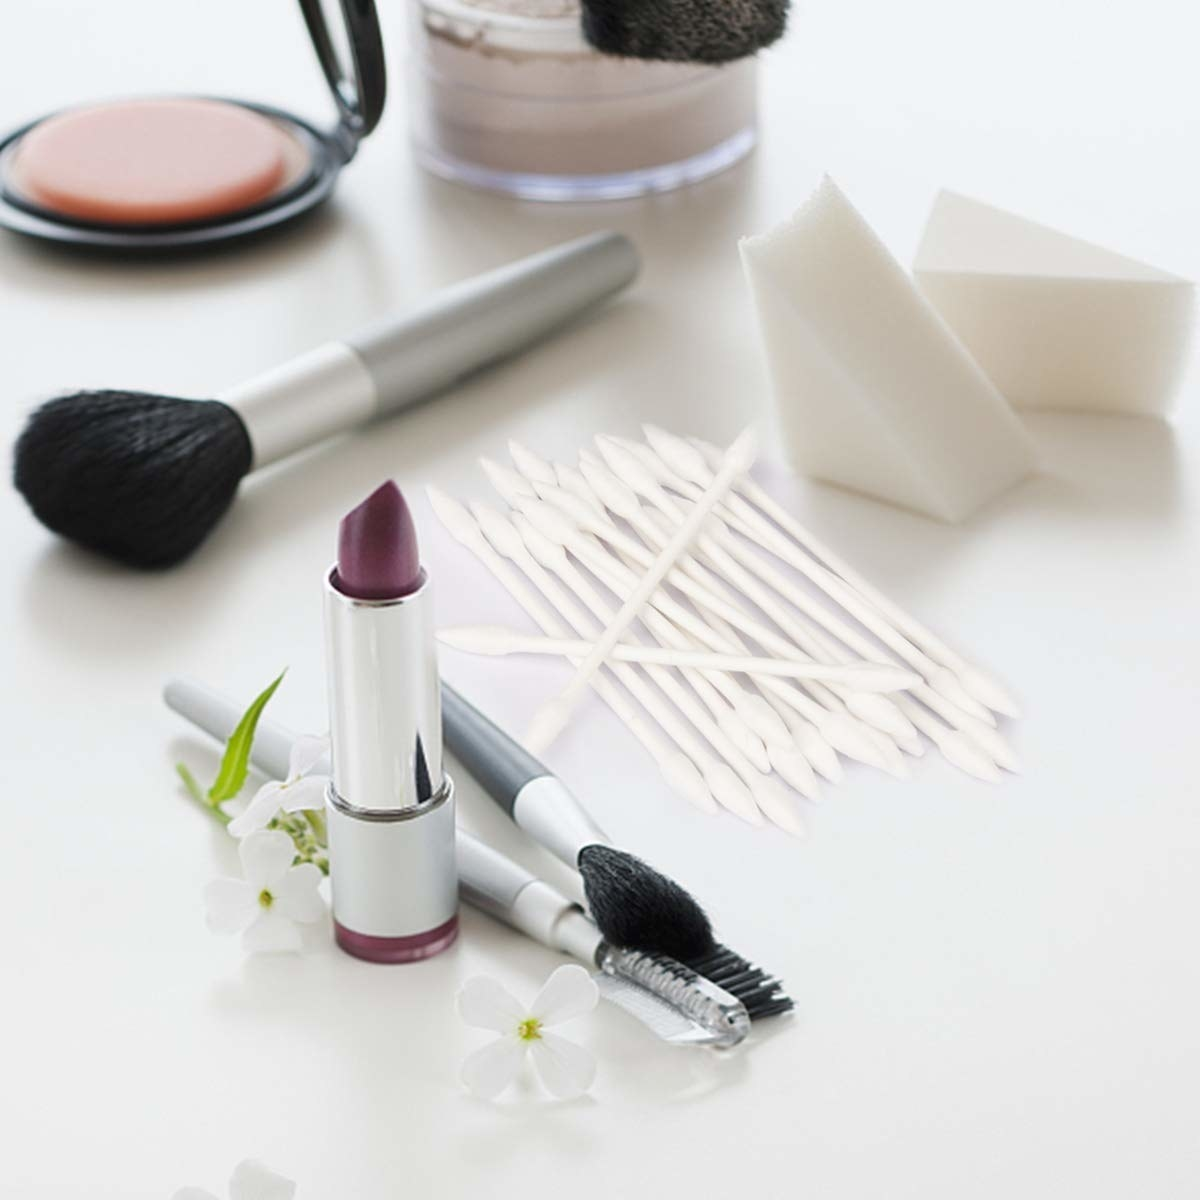 A pile of pointed cotton swabs next to makeup brushes, sponges, and a tube of lipstick